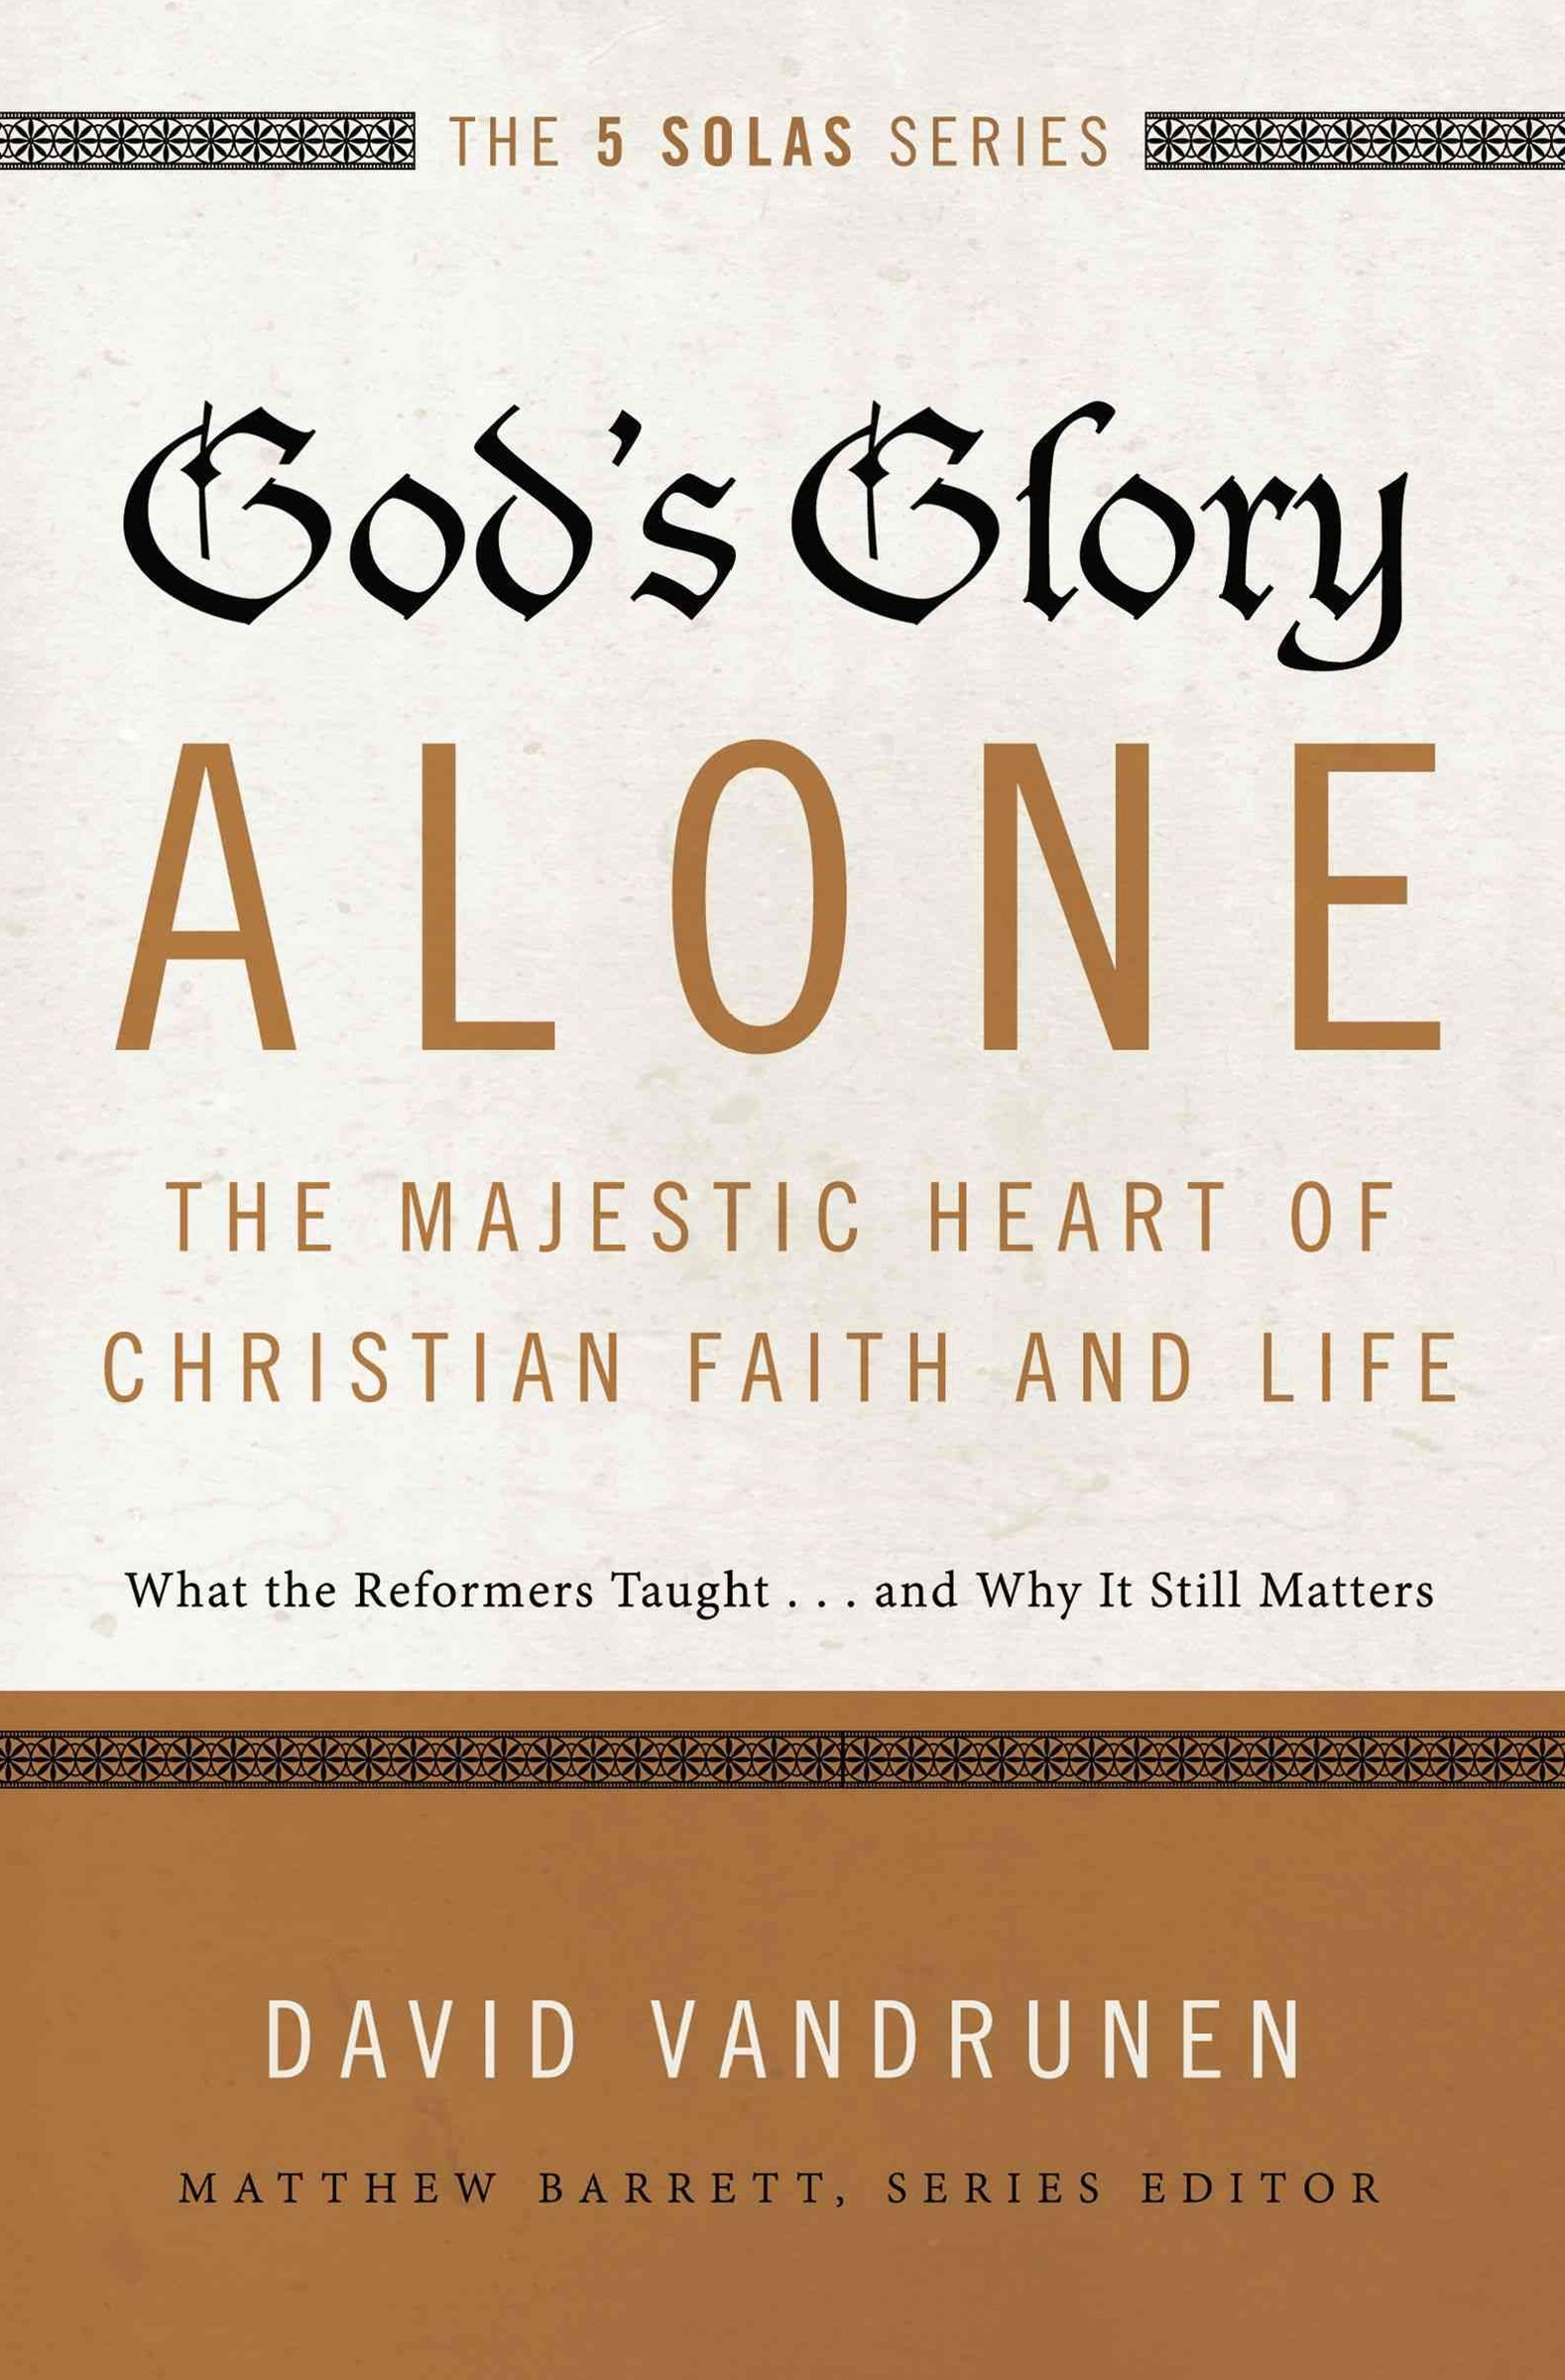 God's Glory Alone---The Majestic Heart of Christian Faith and Life